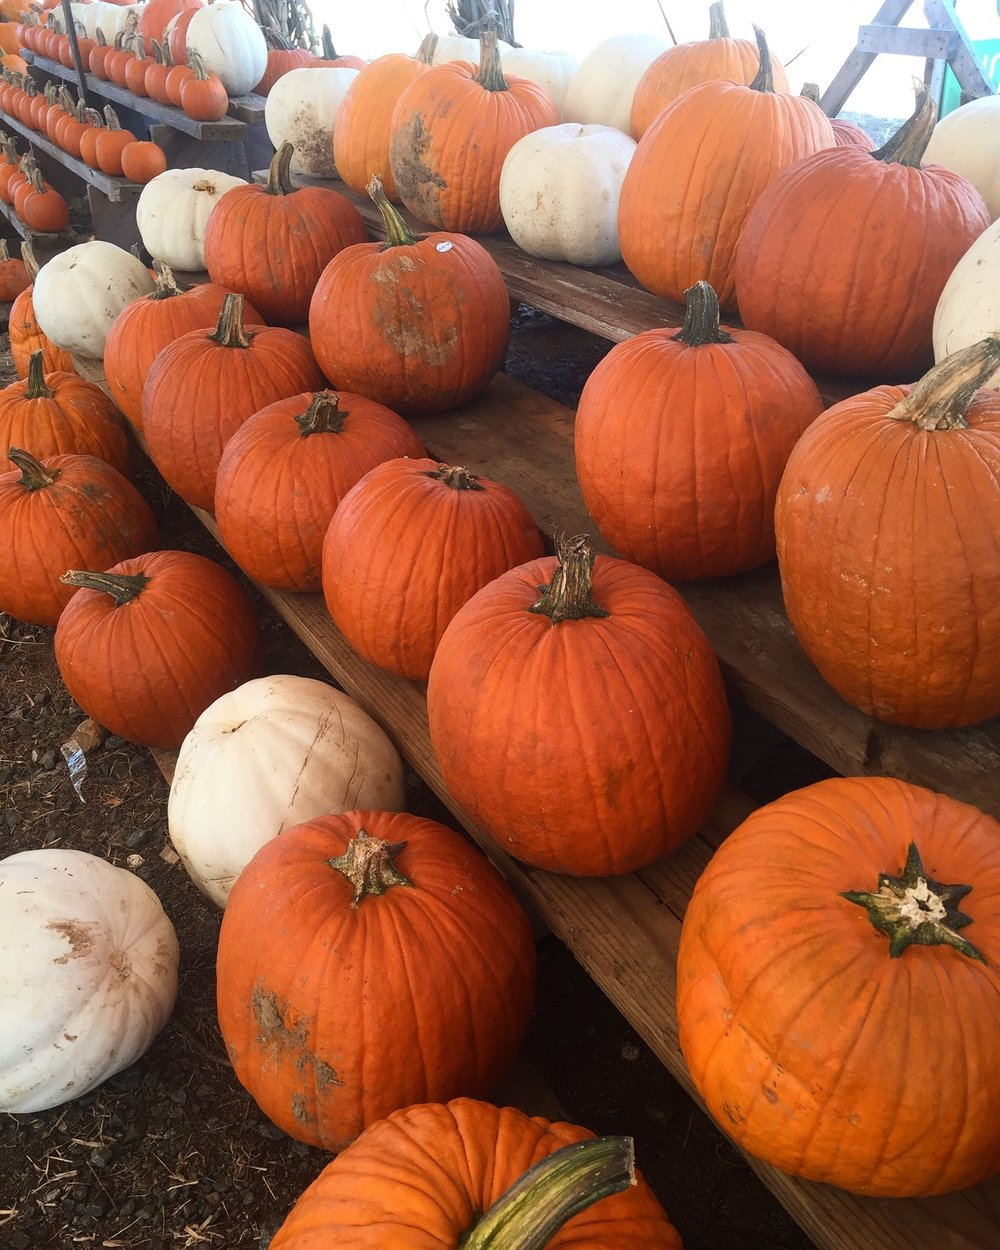 { If you don't take a trip to the pumpkin patch, did fall even happen? }